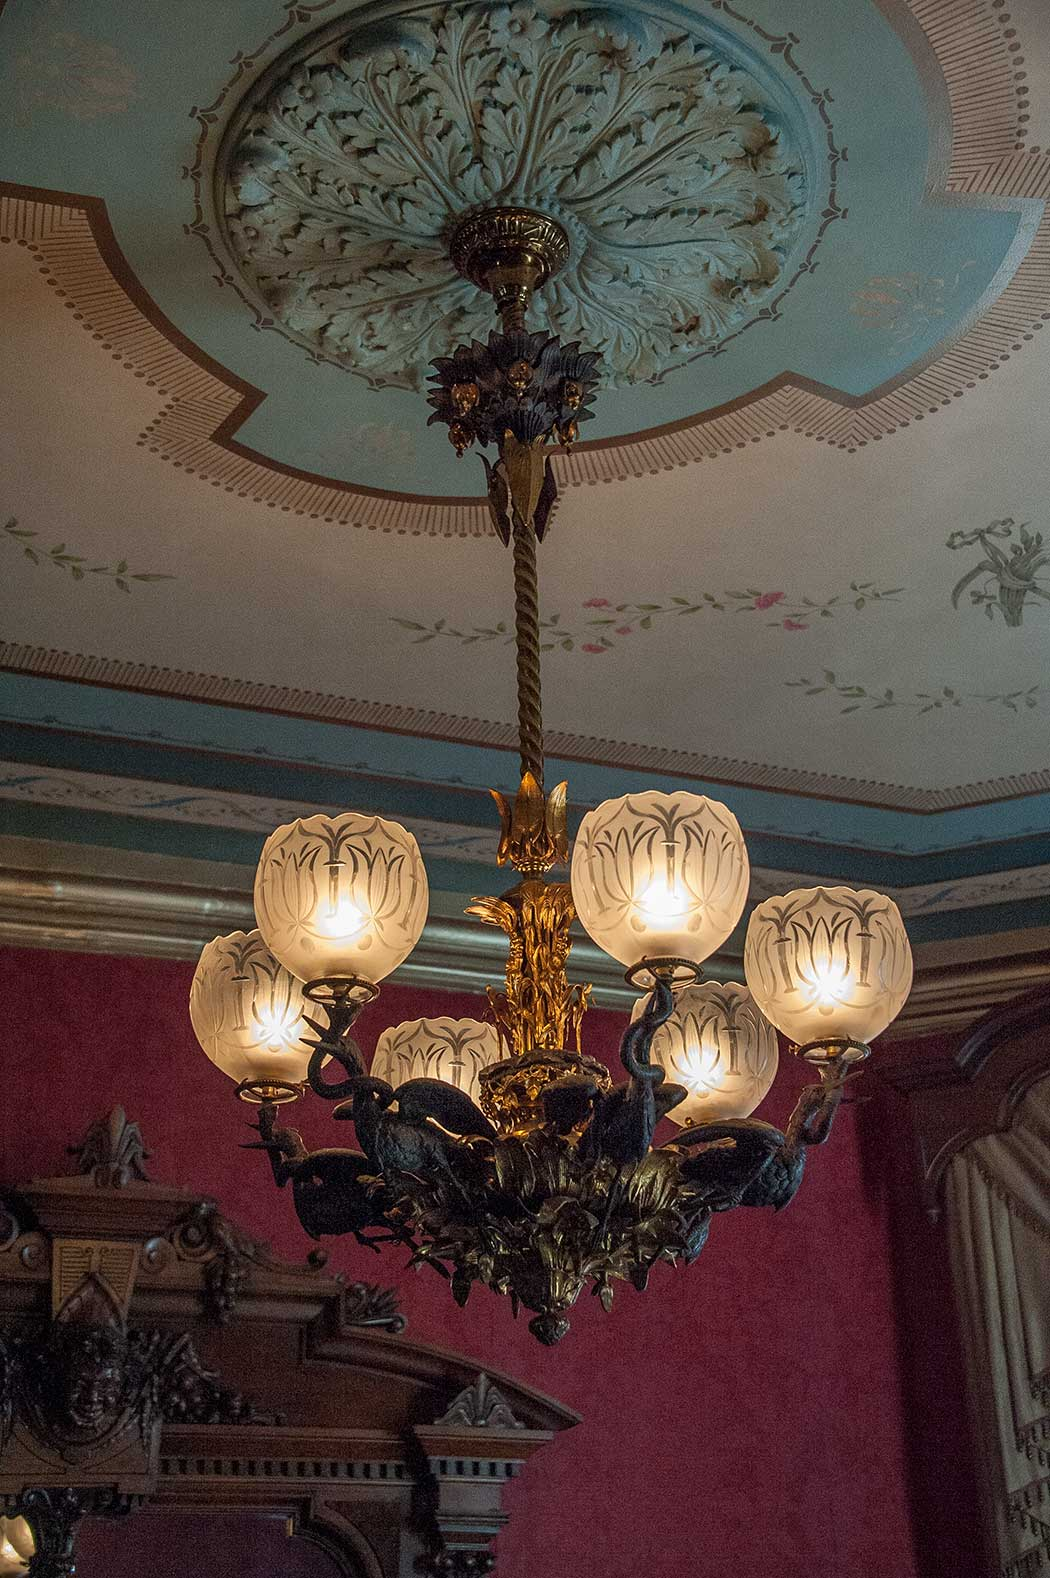 Delightful The Chandeliers Hanging In The Front Parlor And Dining Room Are Extremely  Rare Examples Of Some Of The Most Ornate Gas Lighting From The 1850u0027s.